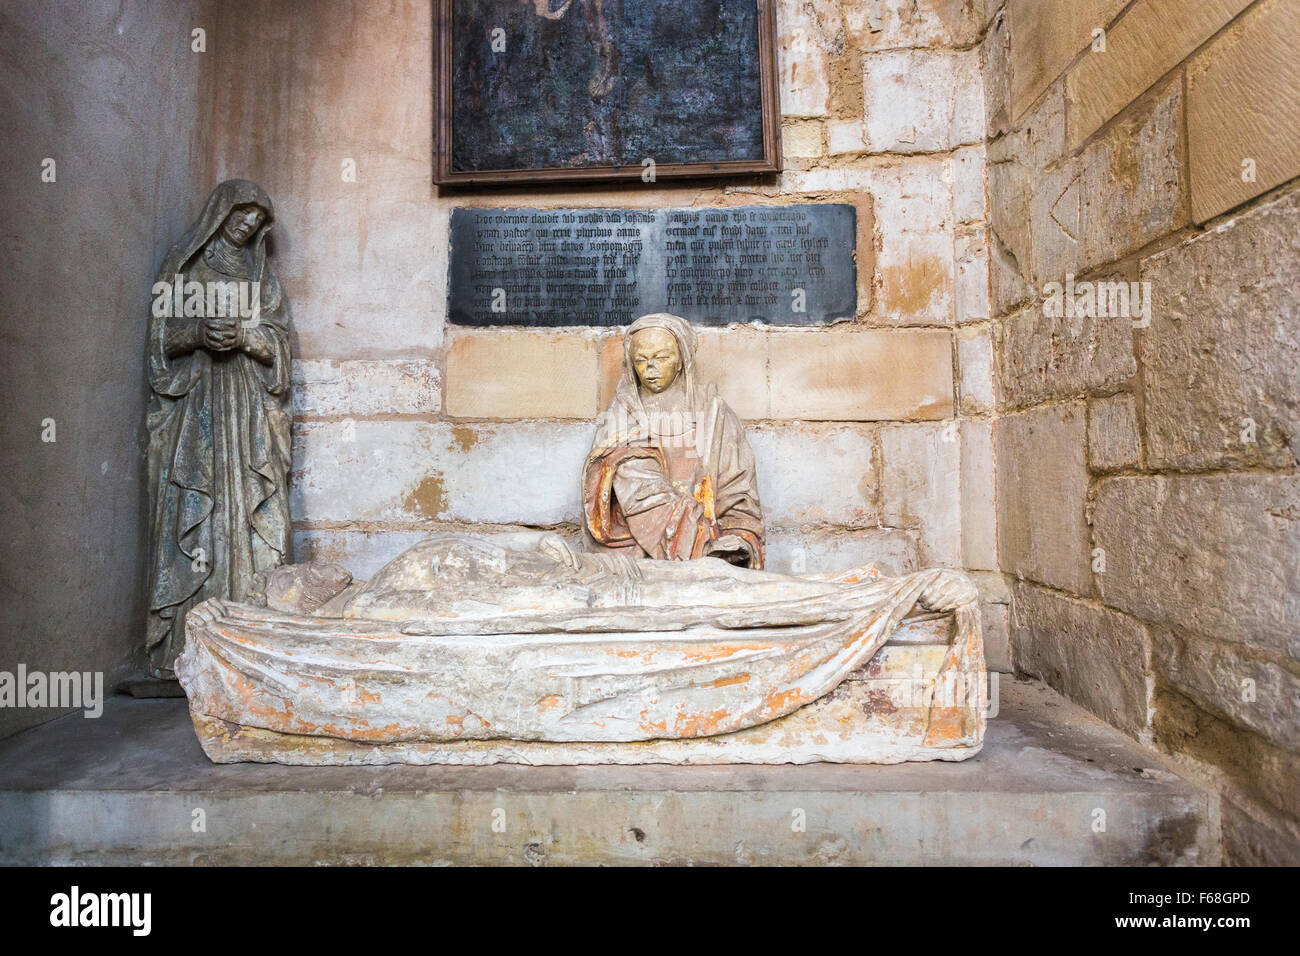 Stone tomb in Collegiale Notre-Dame church in the village of Ecouis, Normandy, northern France - Stock Image